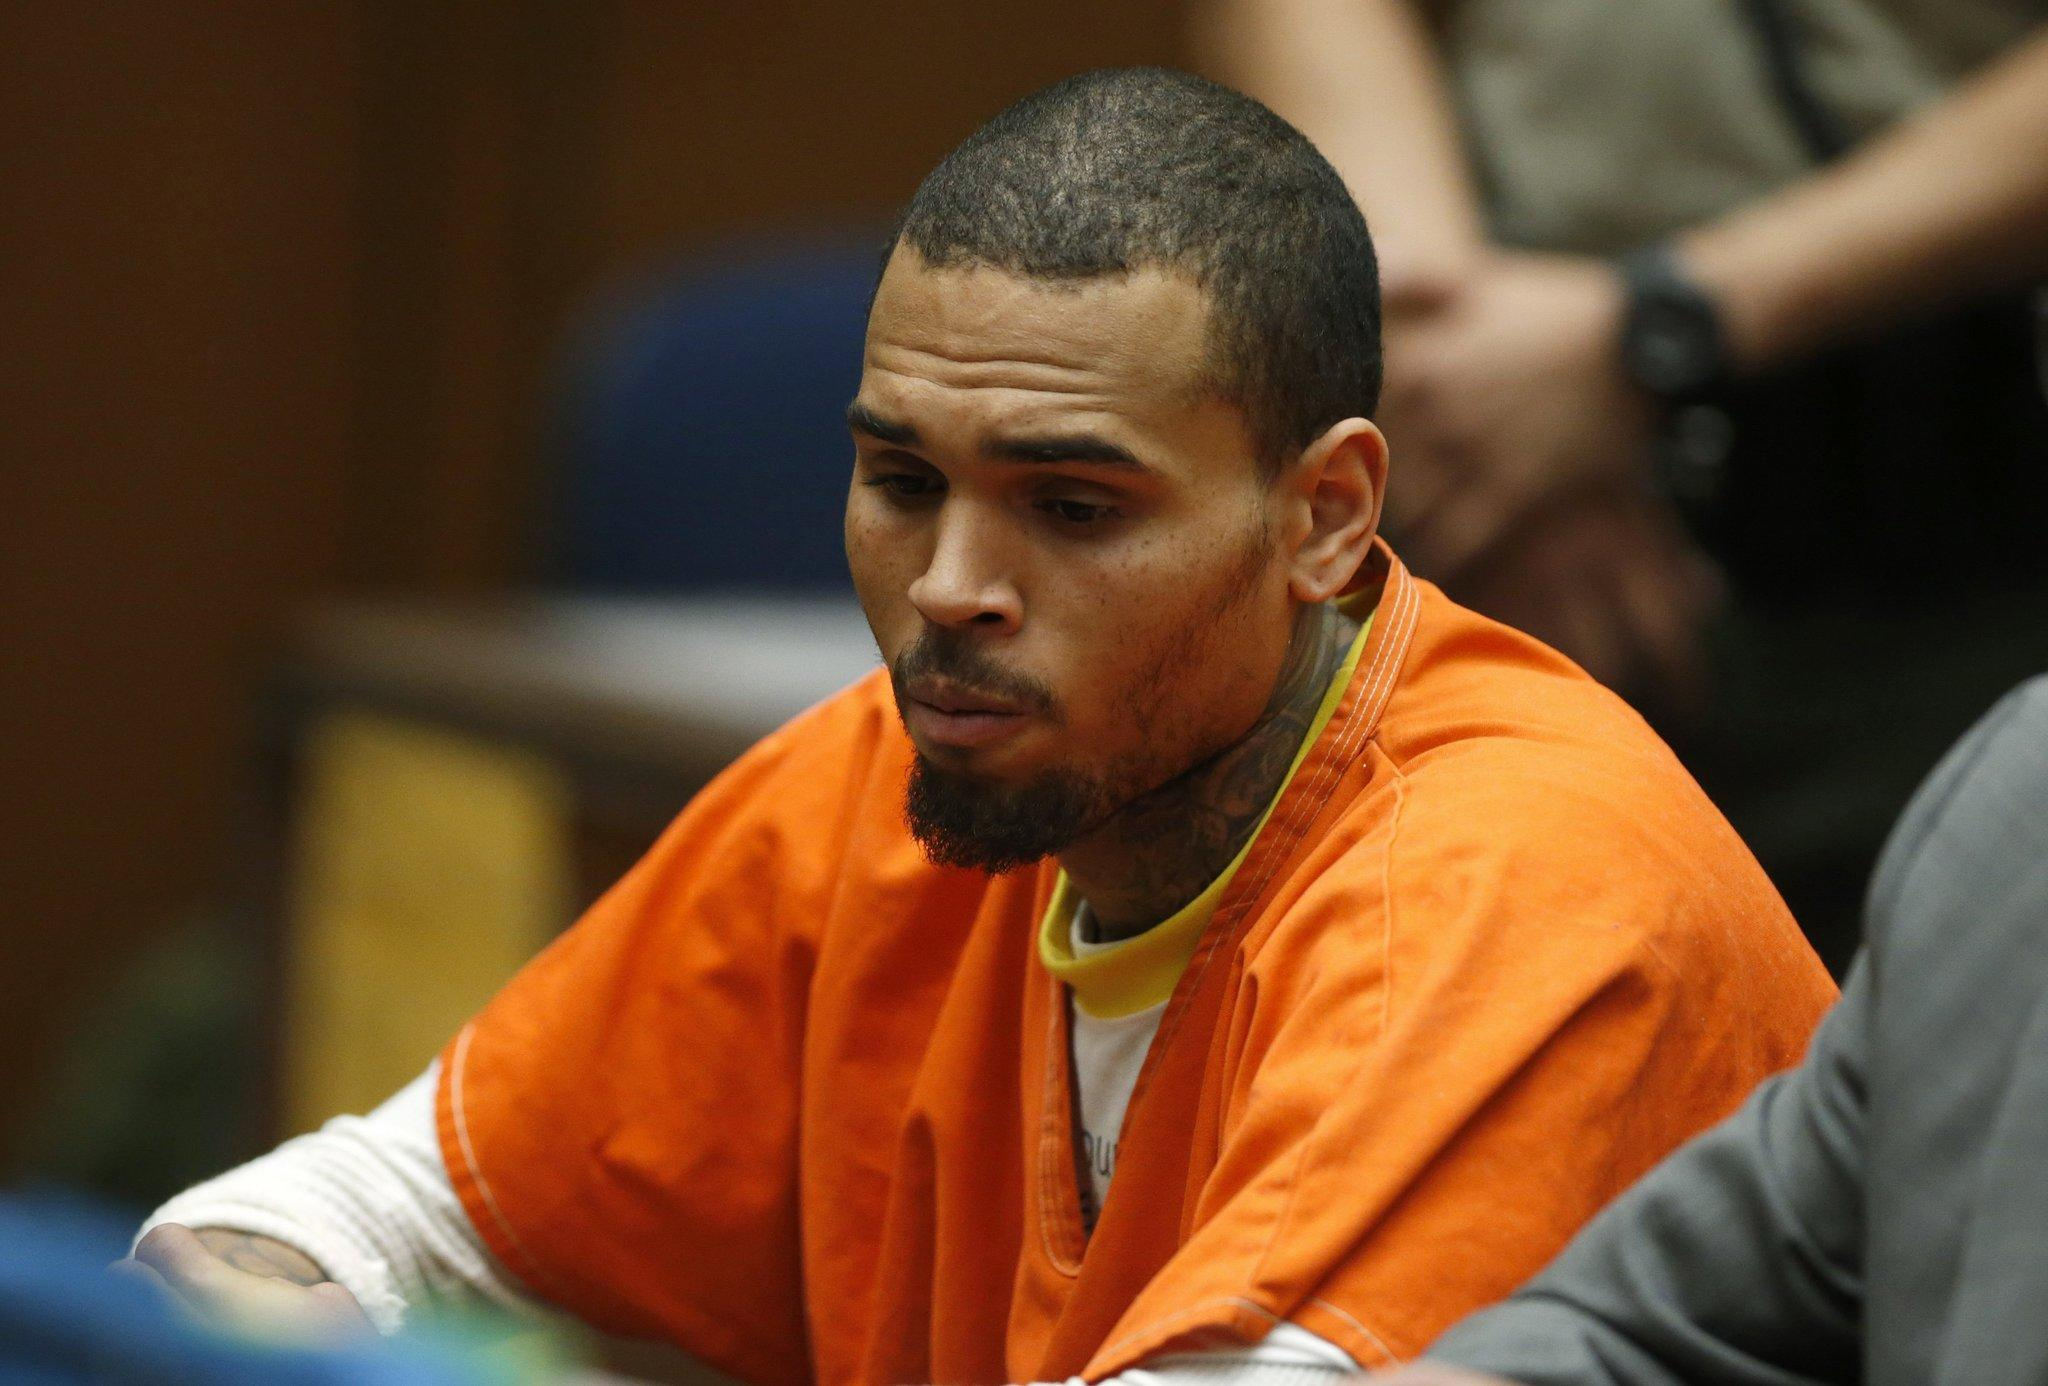 Chris Brown won another delay in his assault trial in Washington, D.C., as his attorneys try to get his bodyguard, who was convicted for the same fracas, to testify in his defense.